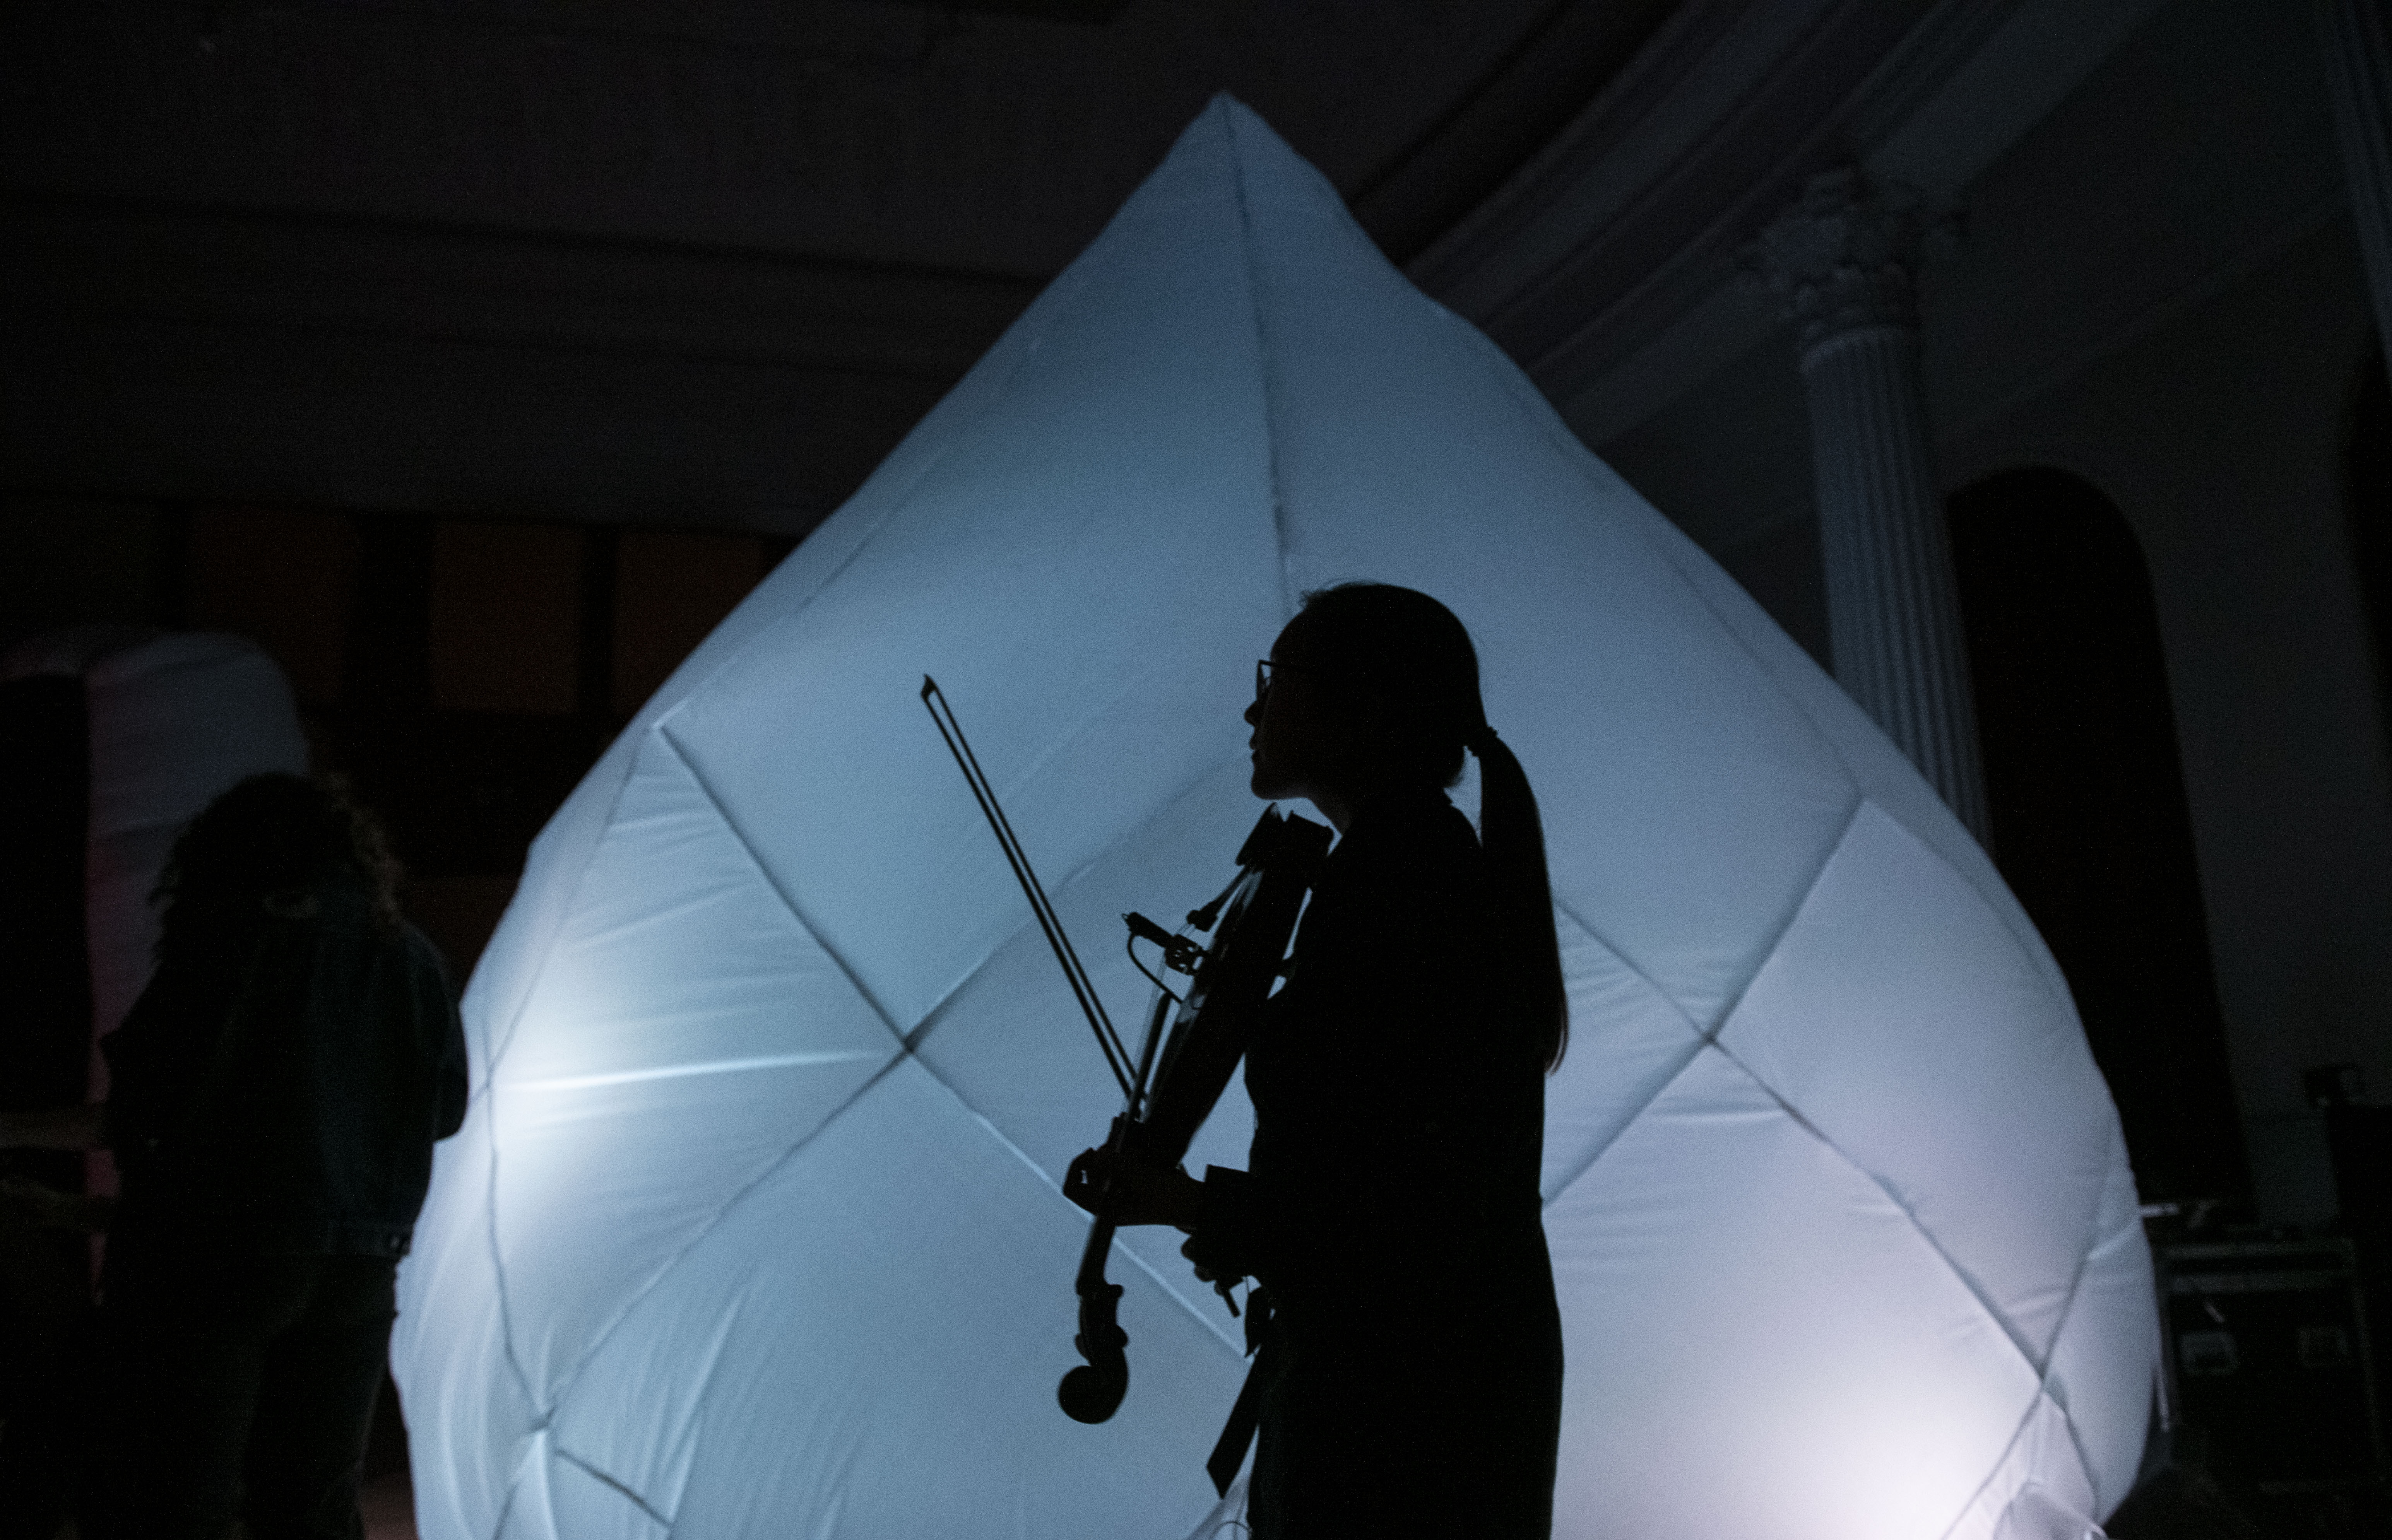 Student playing violin in front of inflatable sculpture